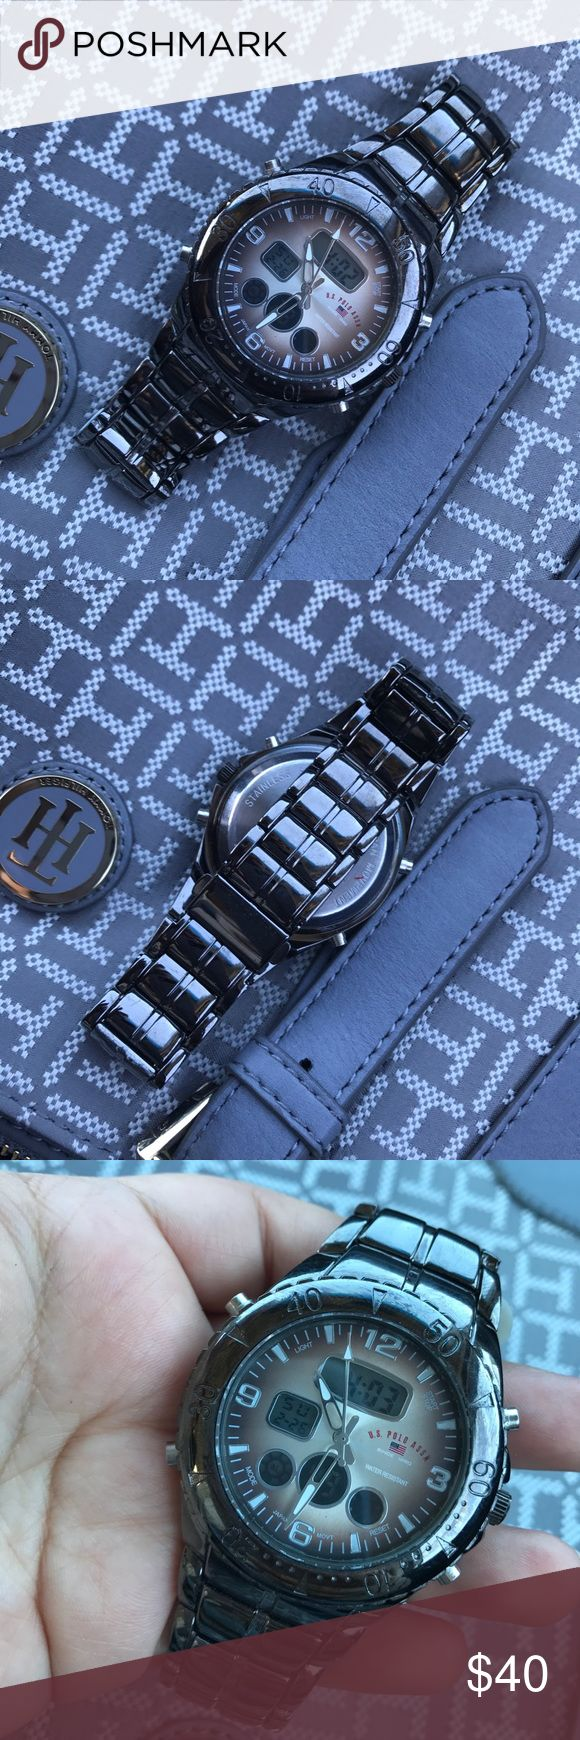 Mens U.S Polo Watch Digital and Manual watch. U.S. Polo Assn. Accessories Watches